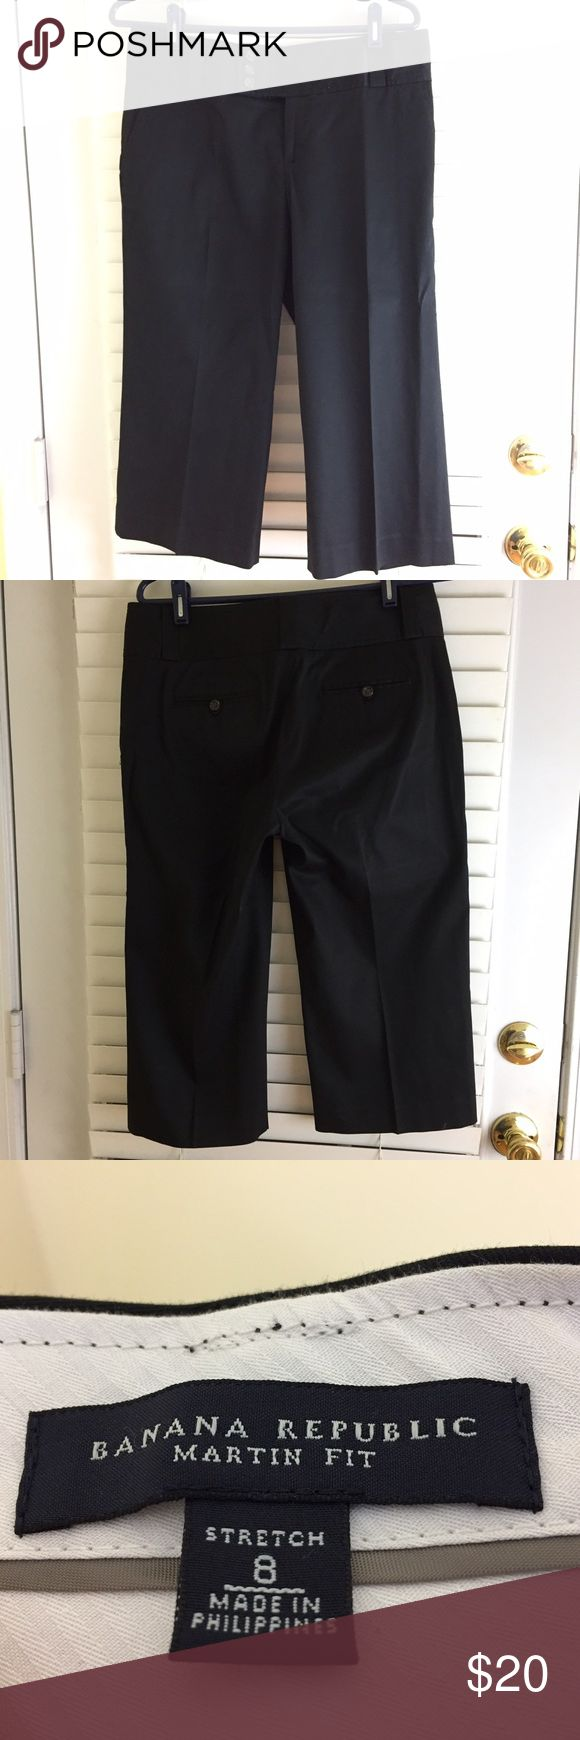 Banana Republic Black Martin Fit Crop Trousers Banana Republic Black Martin Fit Crop Trousers in Size 6 Banana Republic Pants Trousers